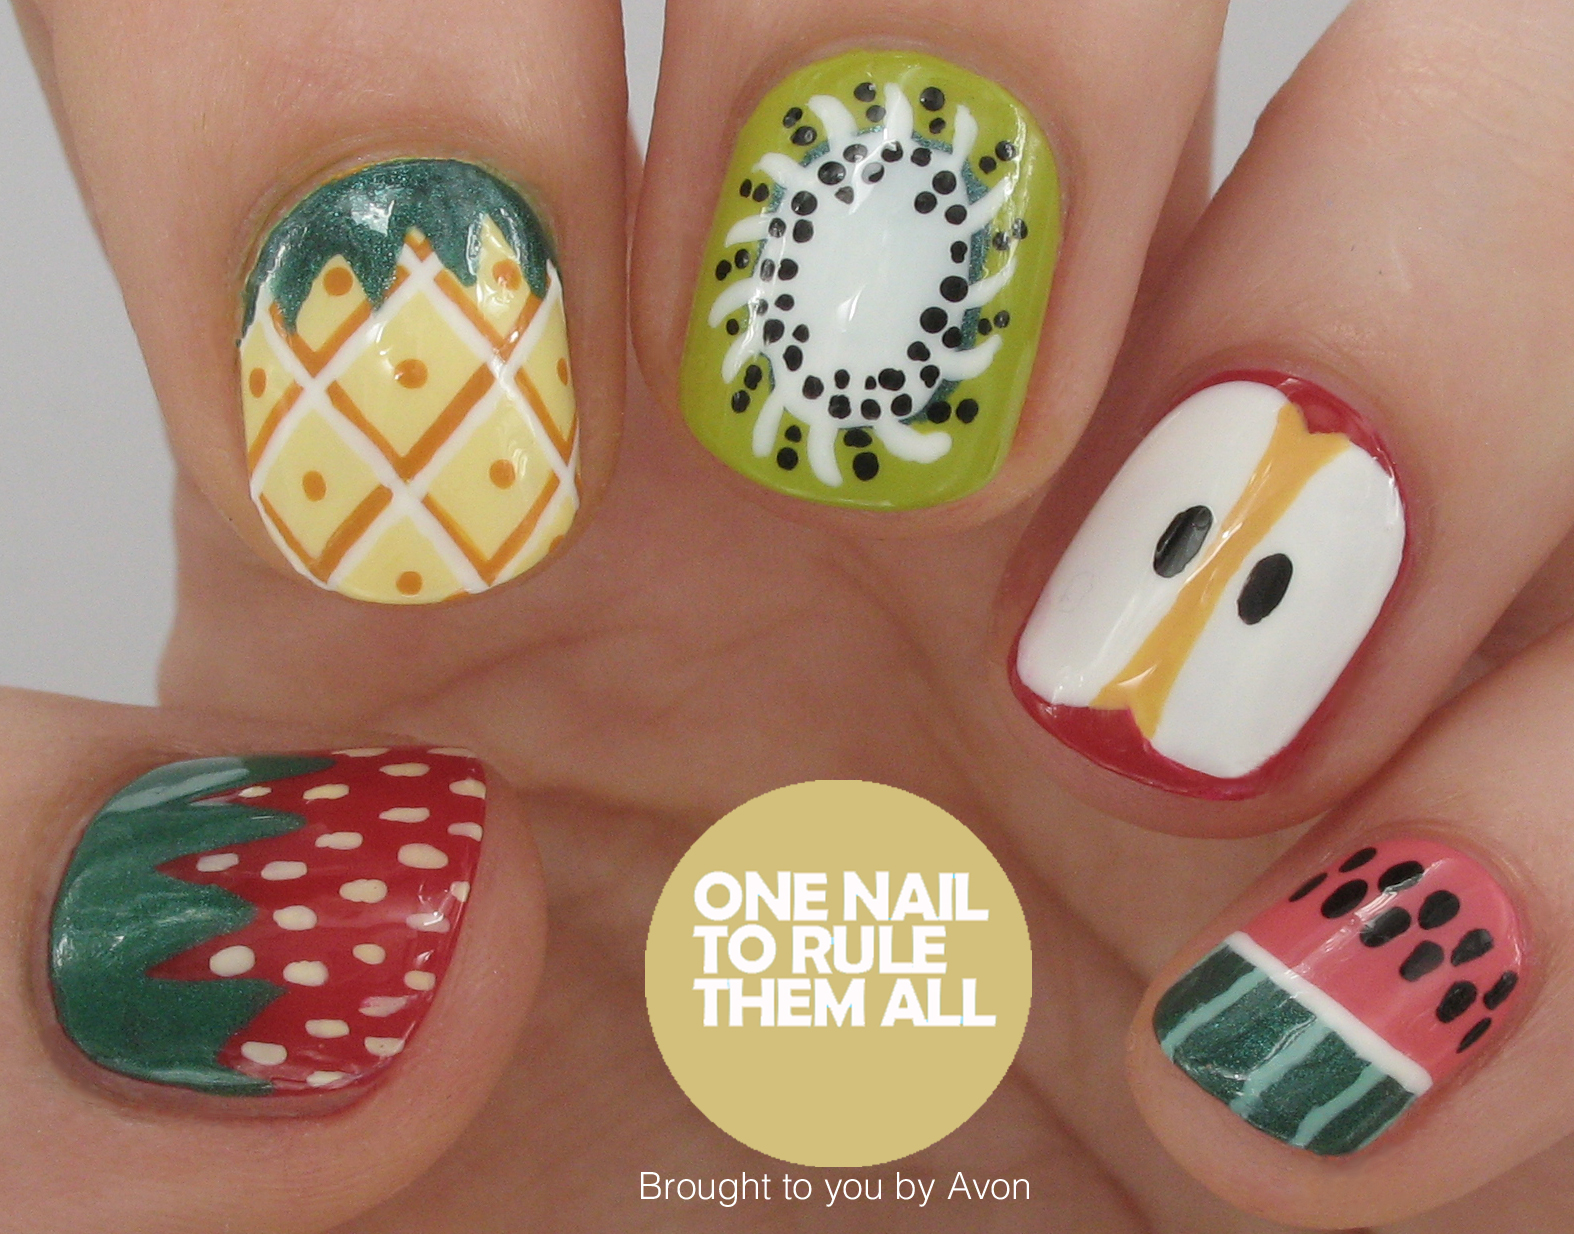 One Nail To Rule Them All: Fruit Nail Art for Avon